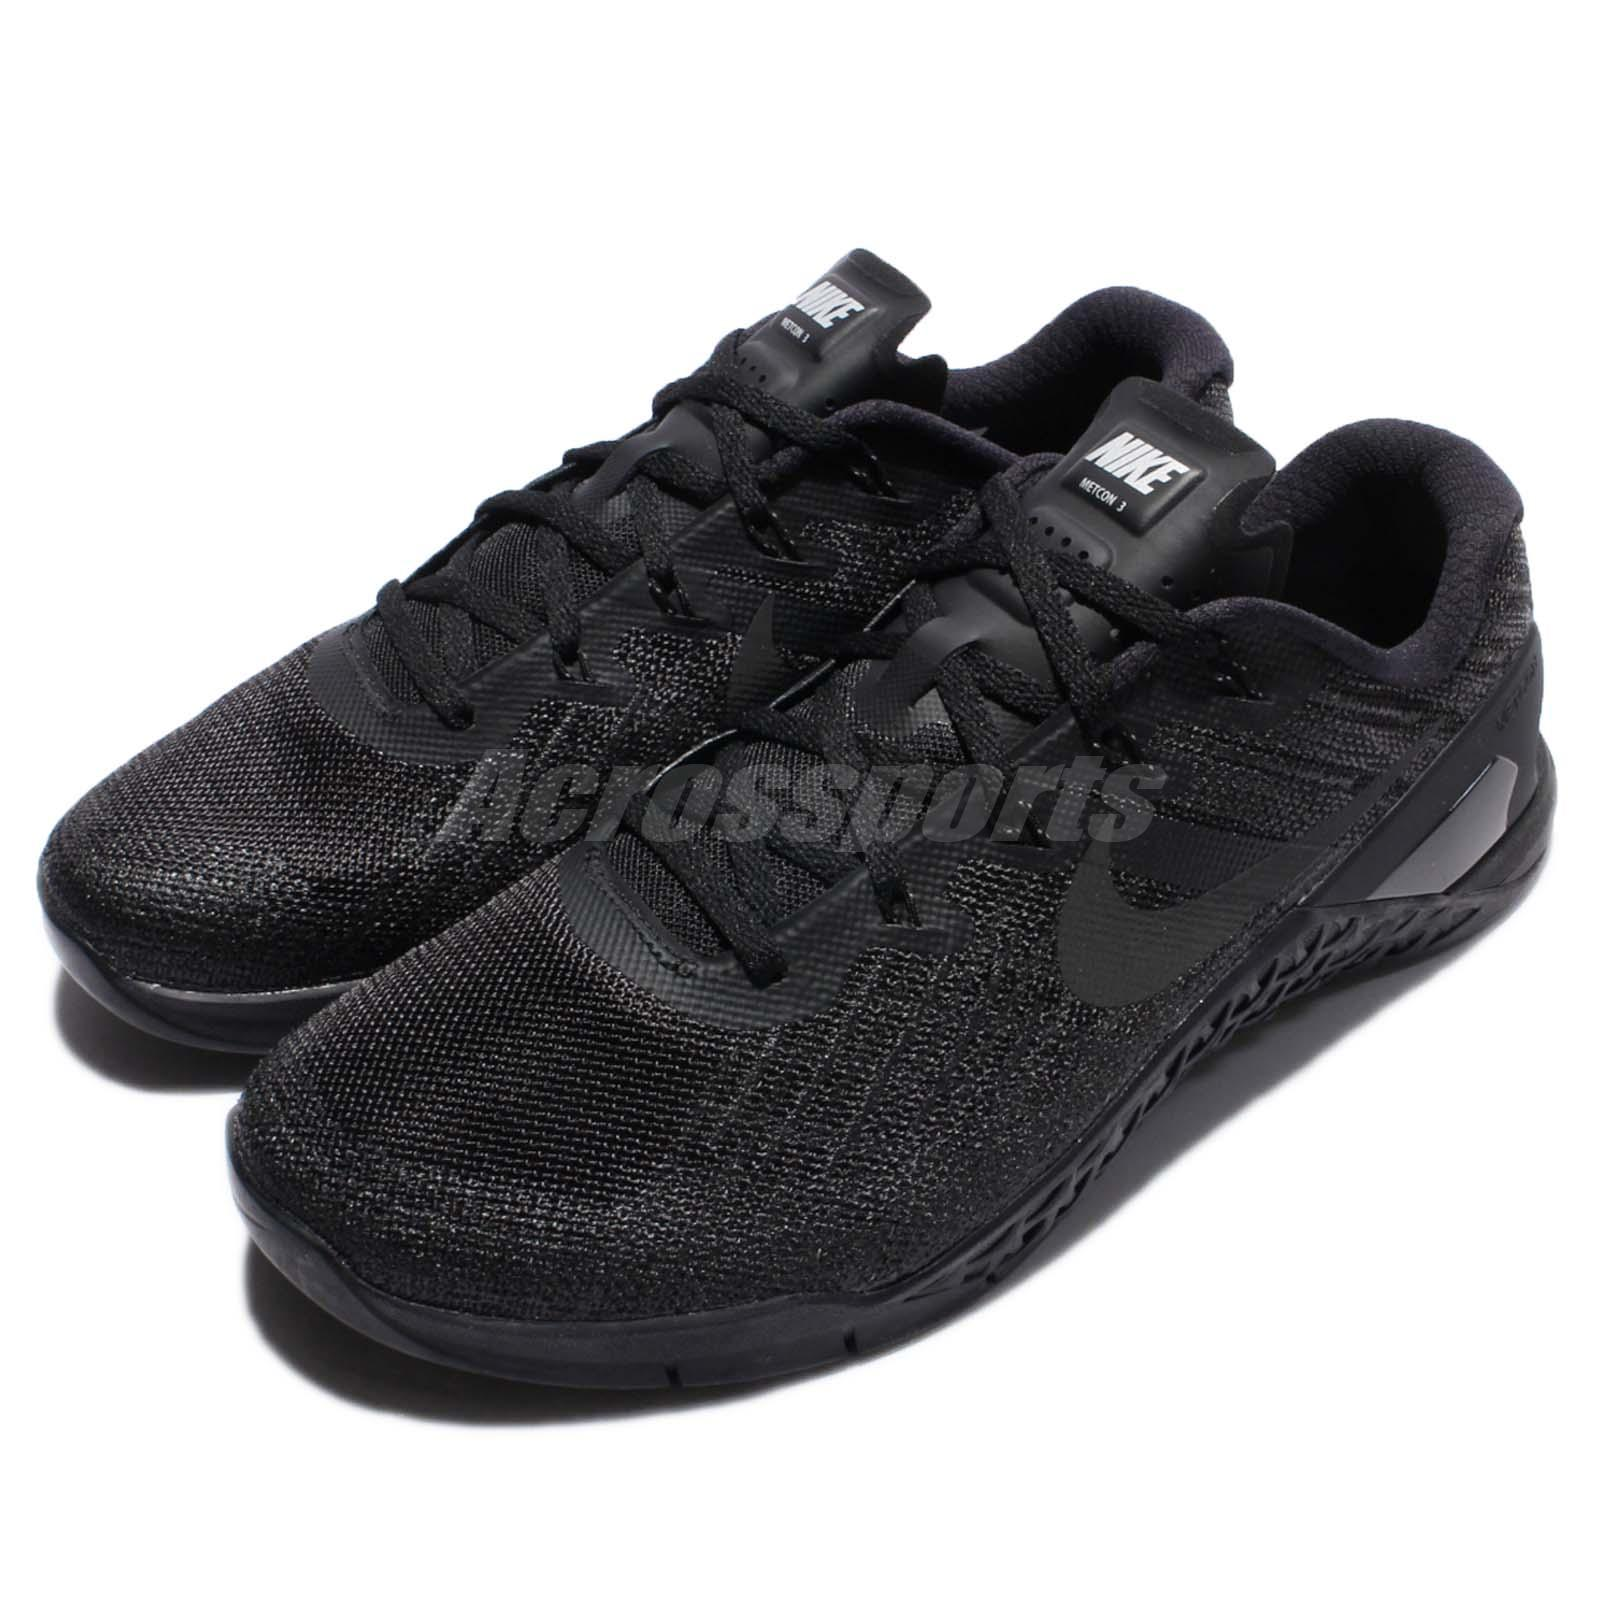 4530faef099ff Details about Nike Metcon 3 III Triple Black Men Training CrossFit Shoes  Sneakers 852928-002